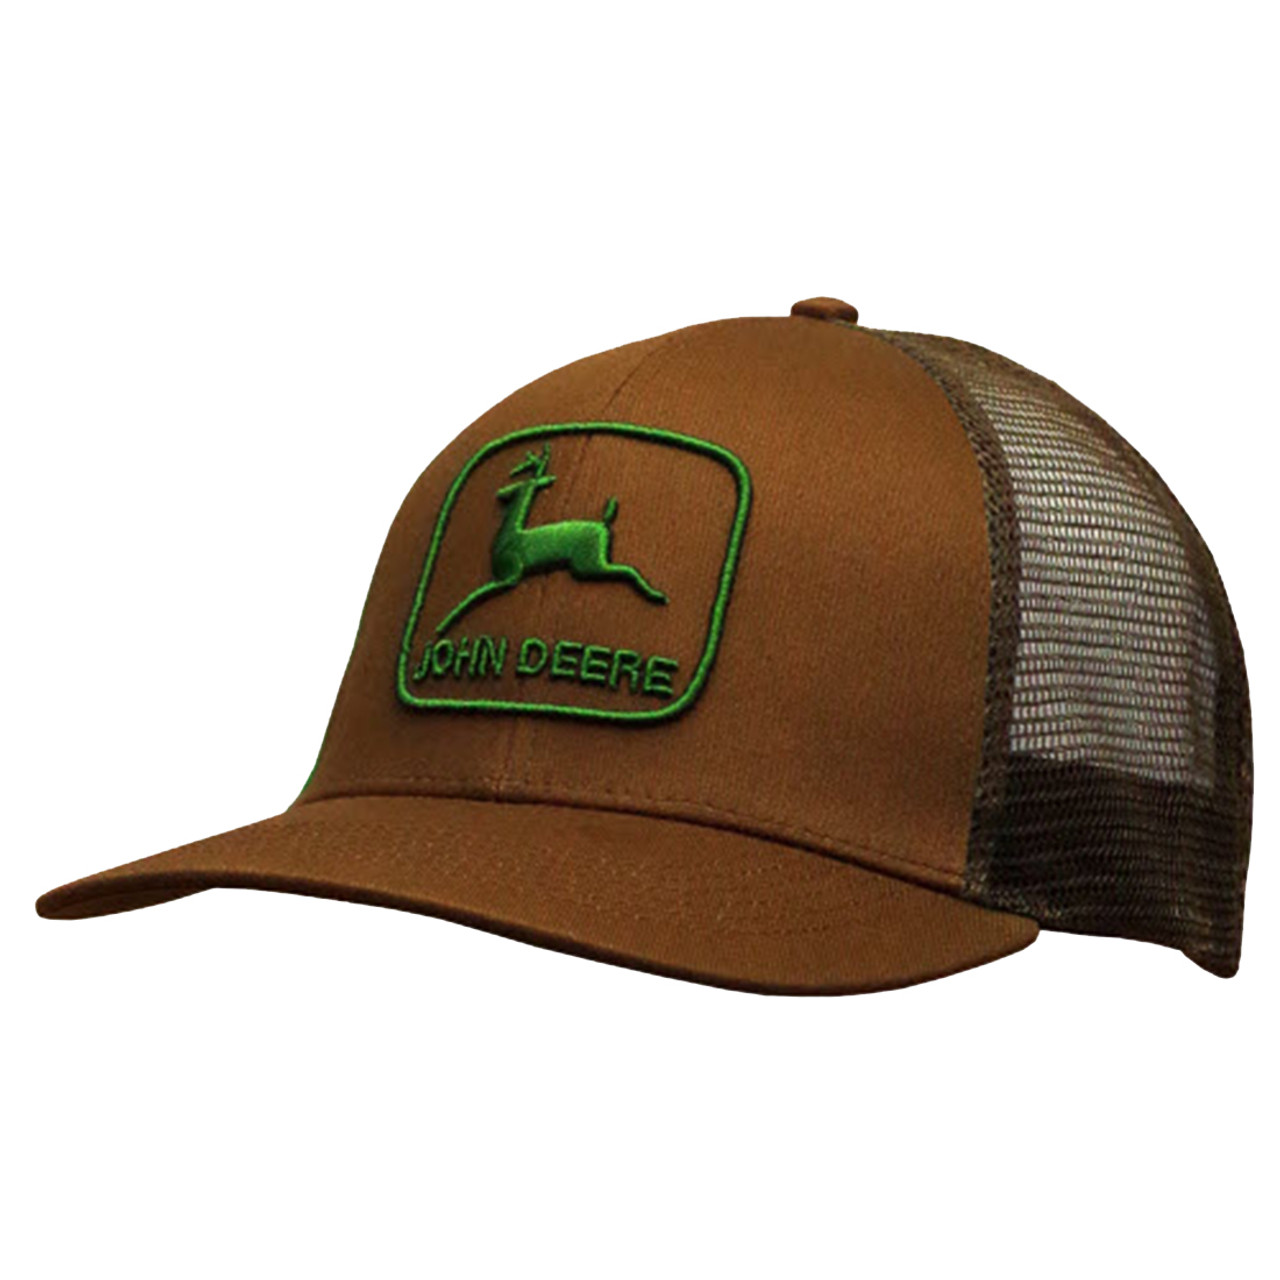 ebbbde74330 John Deere Stretch Fitted Cap - Trenz Shirt Company